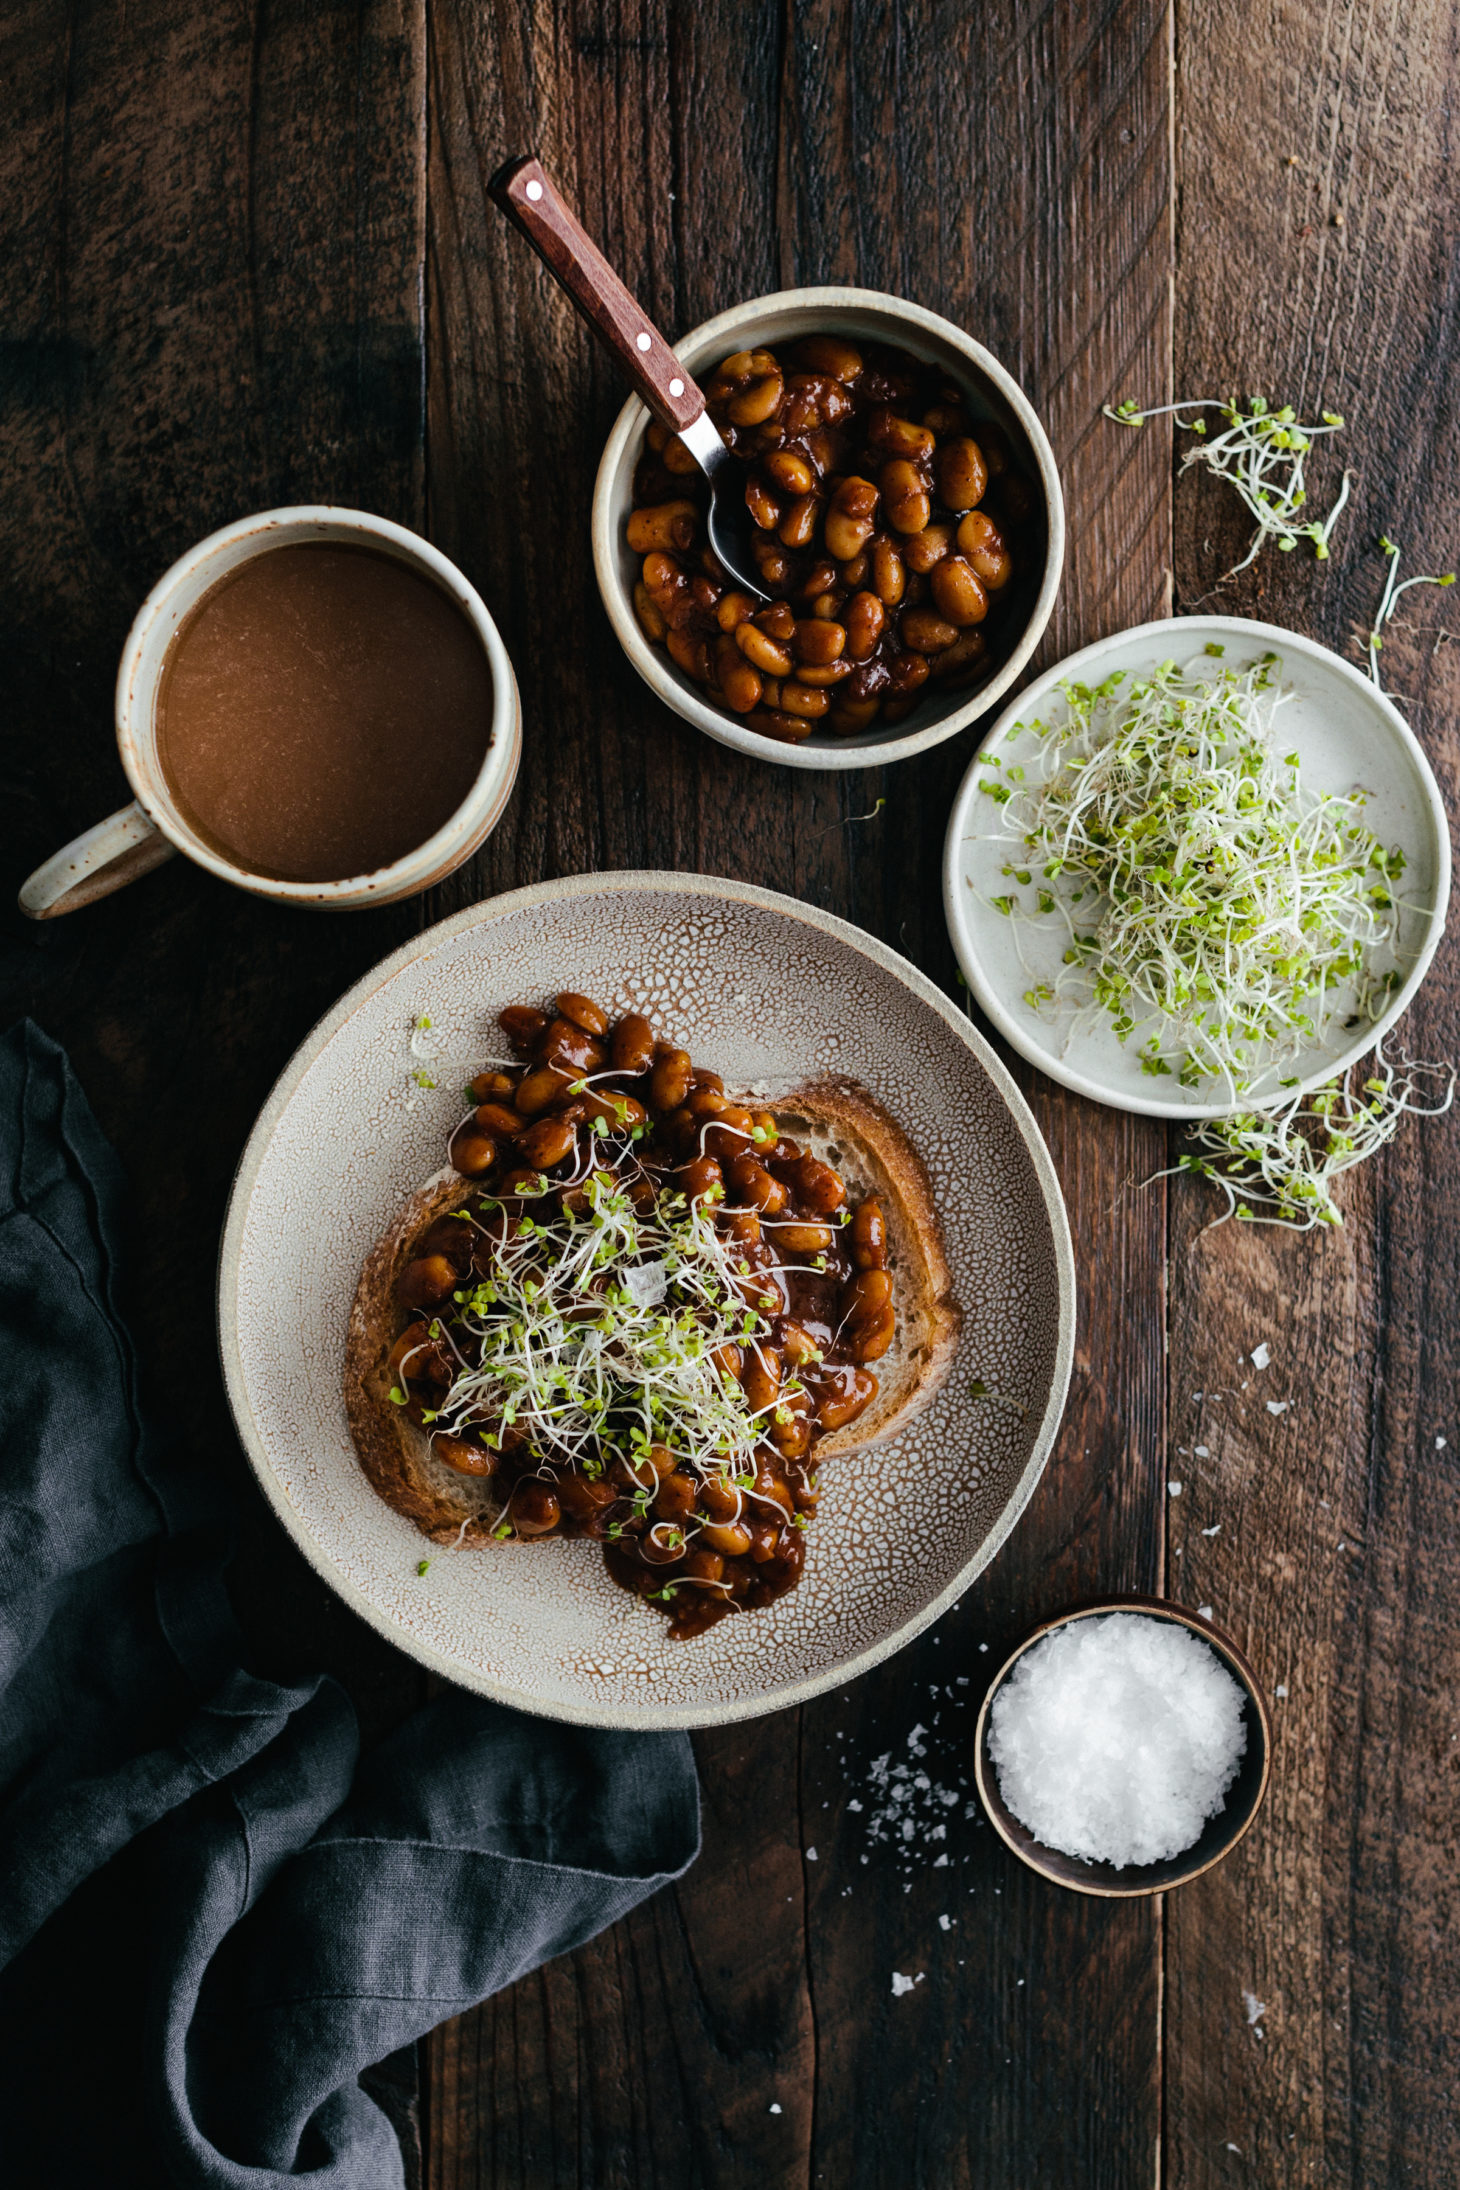 Overhead photo of a piece of toast topped with vegan baked beans and broccoli microgreens.